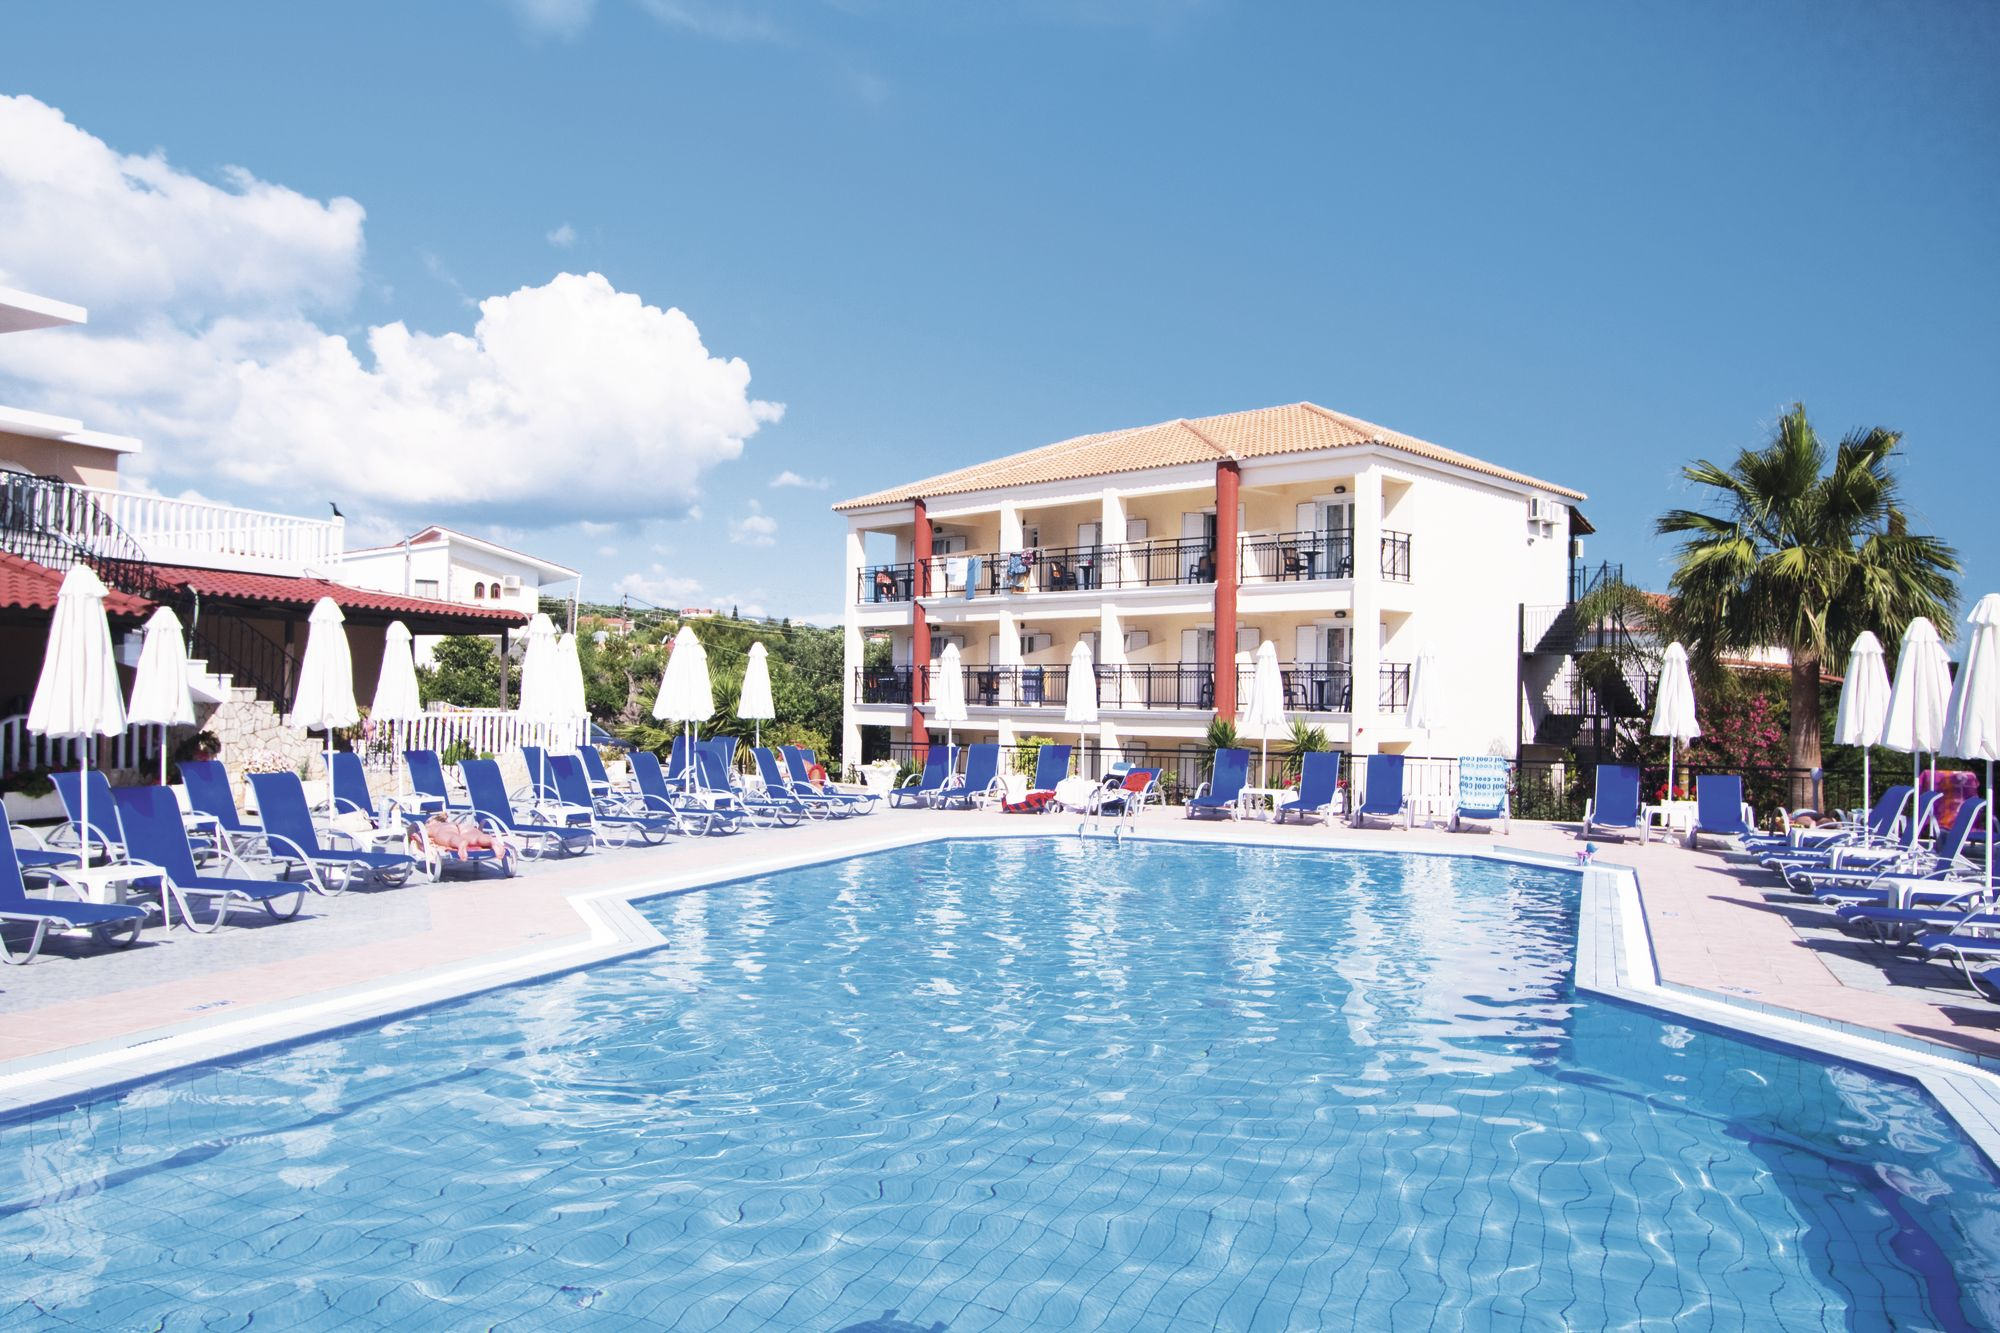 Holiday to Planet Studios & Apartments in TSILIVI (GREECE) for 3 nights (SC) departing from birmingham on 15 Oct